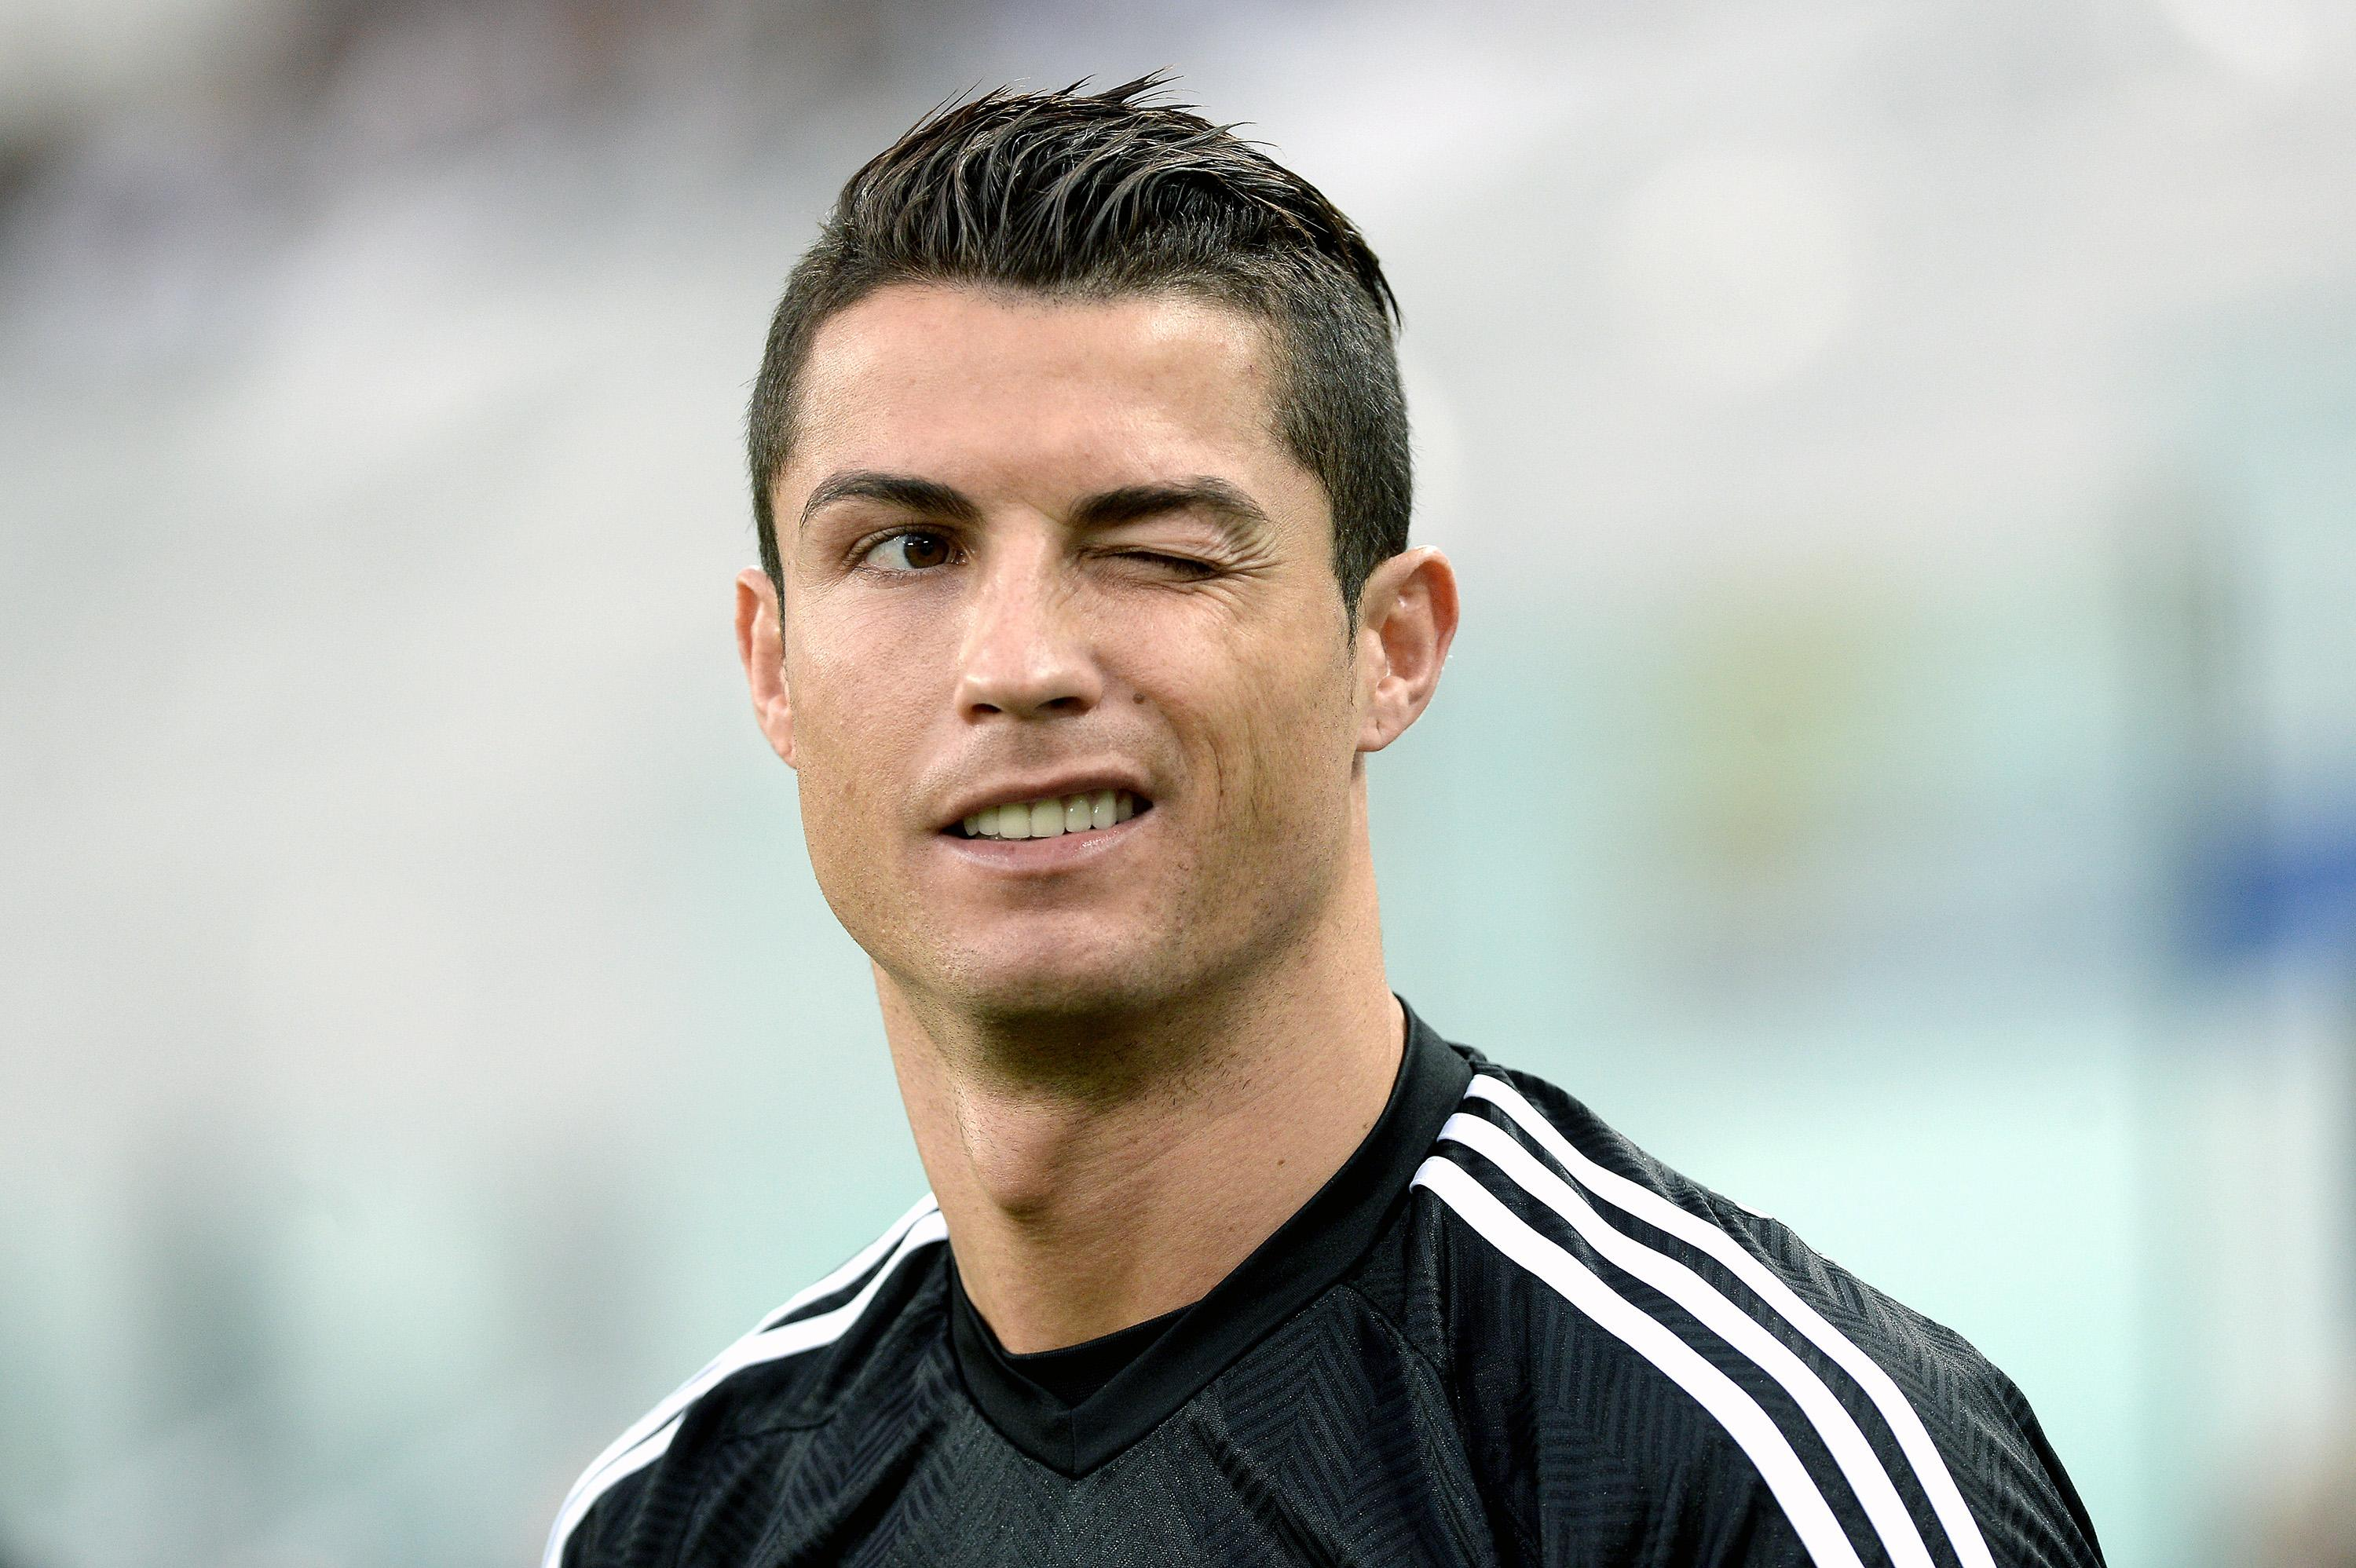 cristiano ronaldo hd wallpapers for desktop download